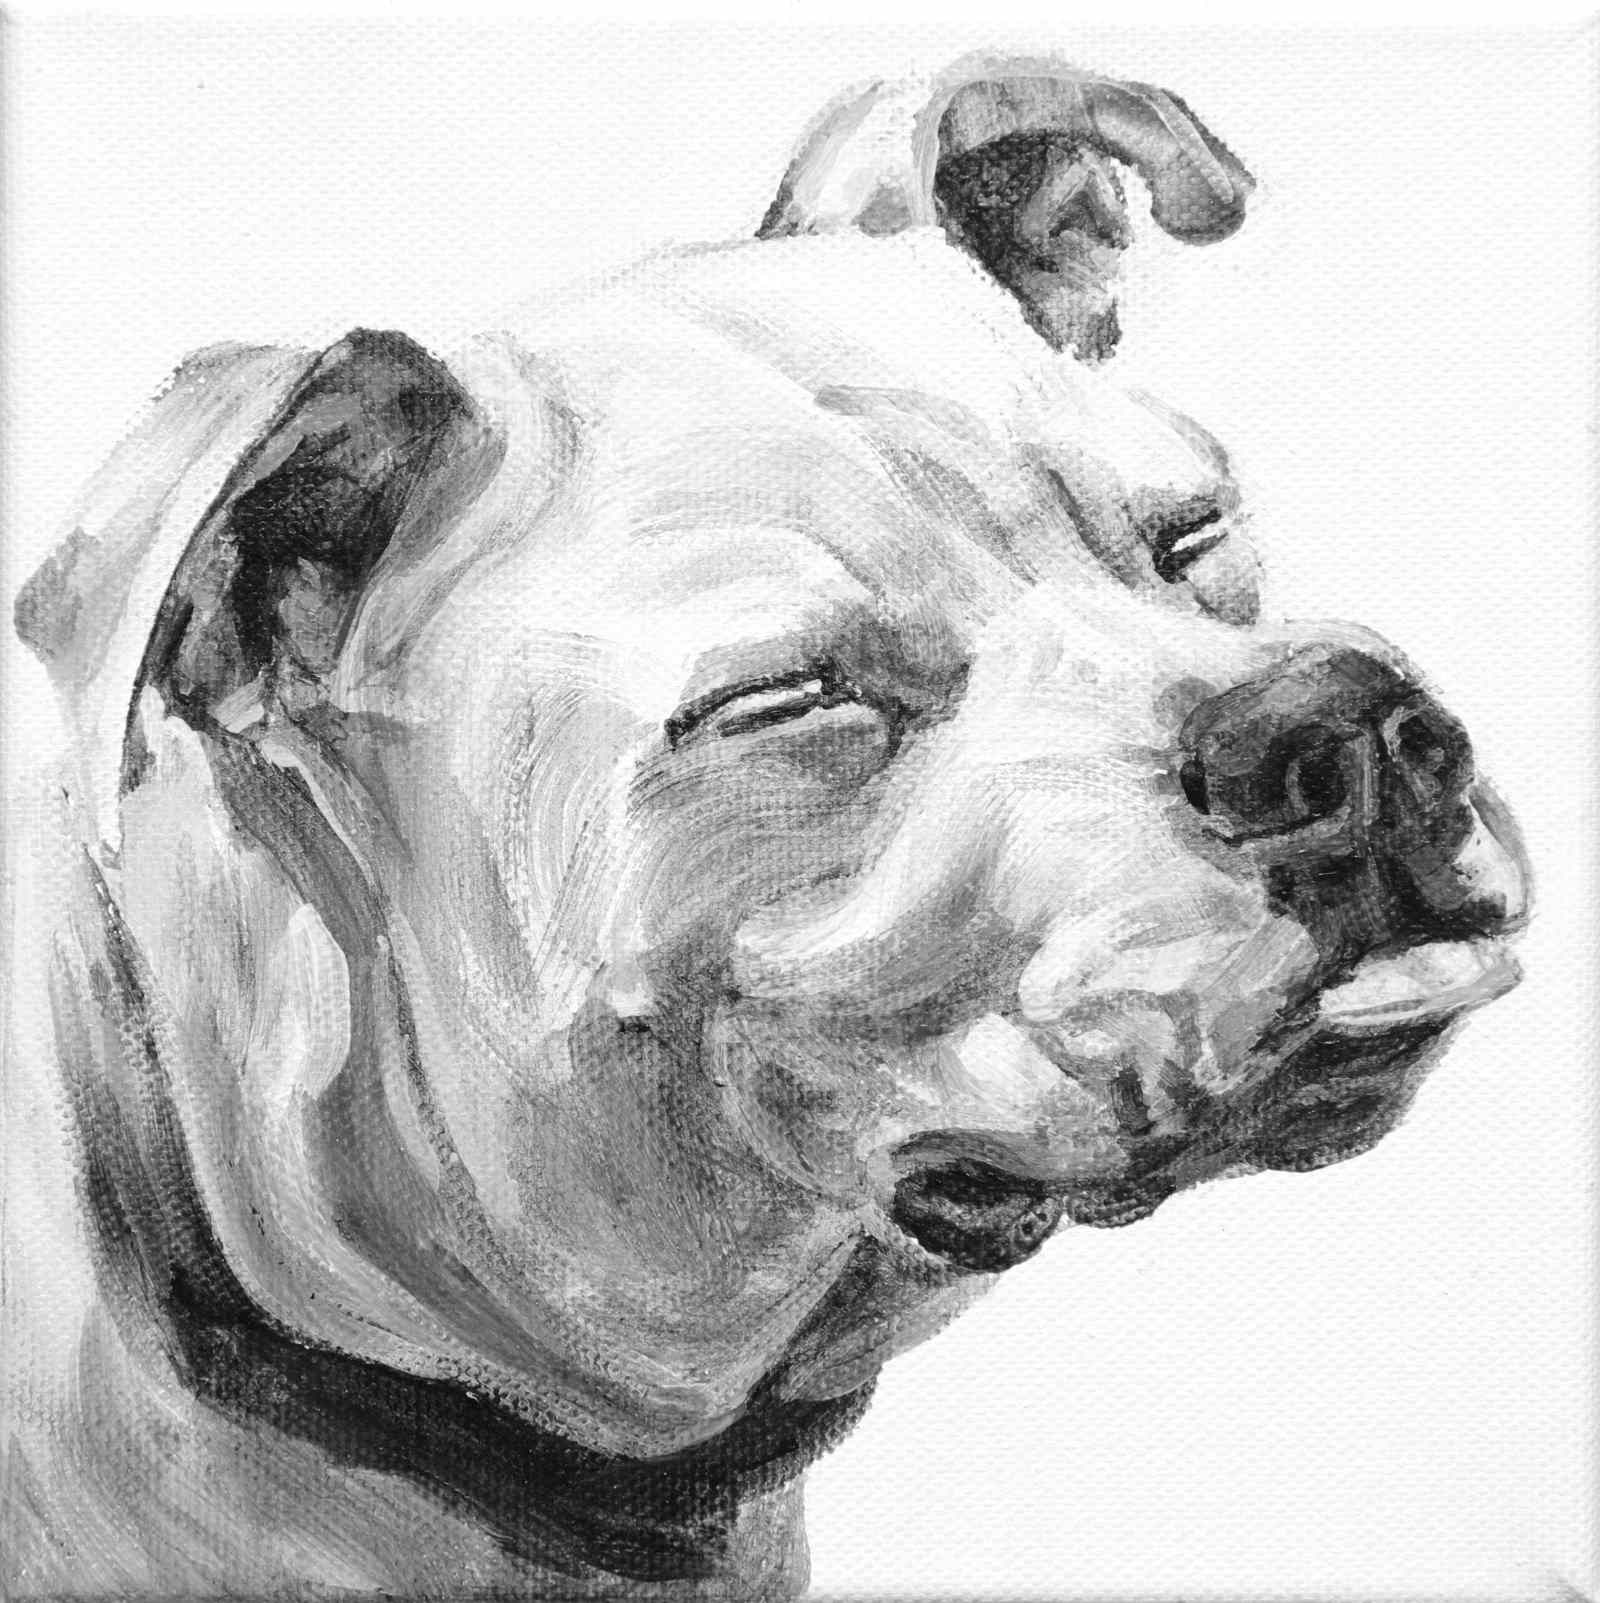 Leroy's tongue appears to be waiting for a snow drop. A closed eyes portrait of an American Pit Bull in black and white by Elizabeth Lisa Petrulis.